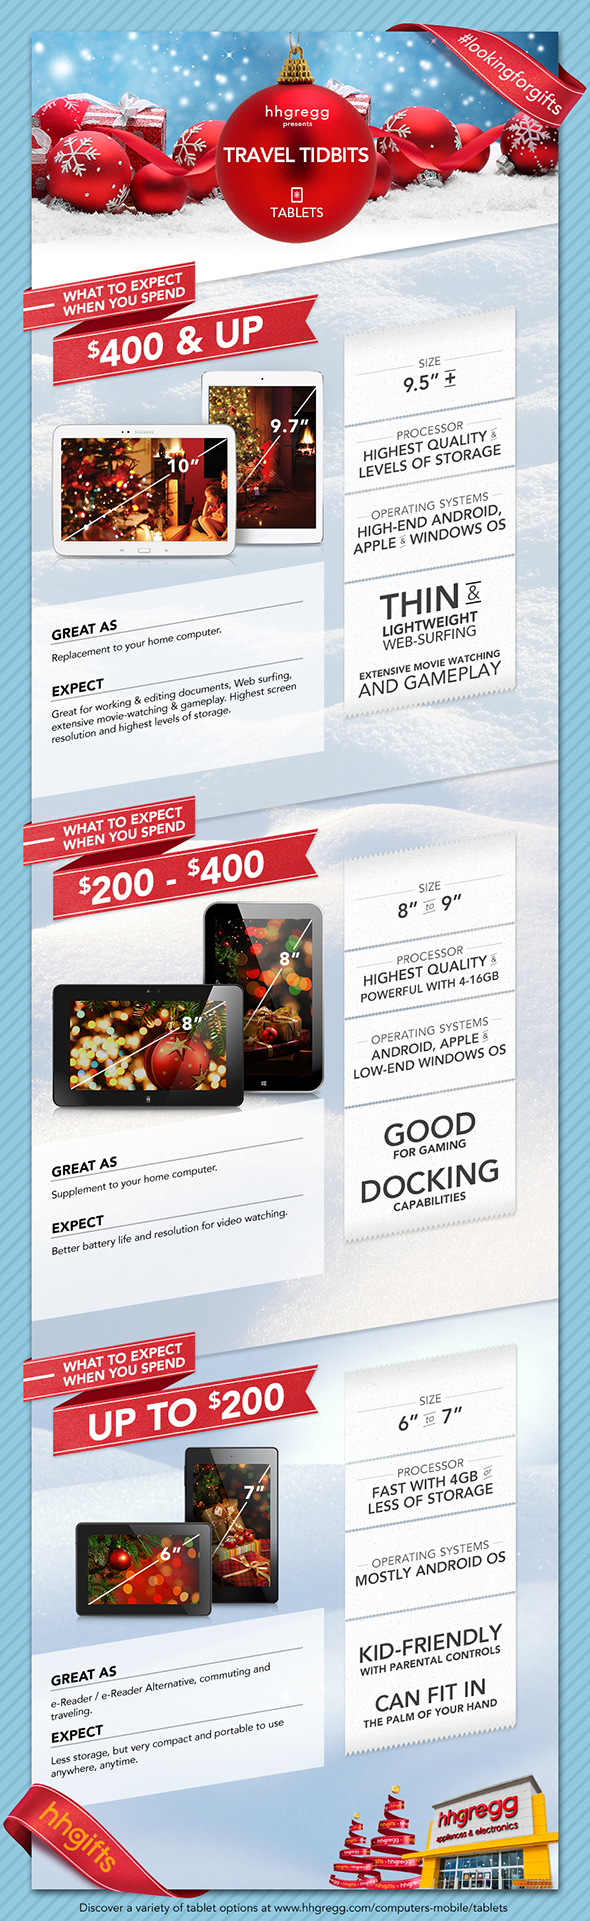 hhgregg-tablet-buying-guide-infographic